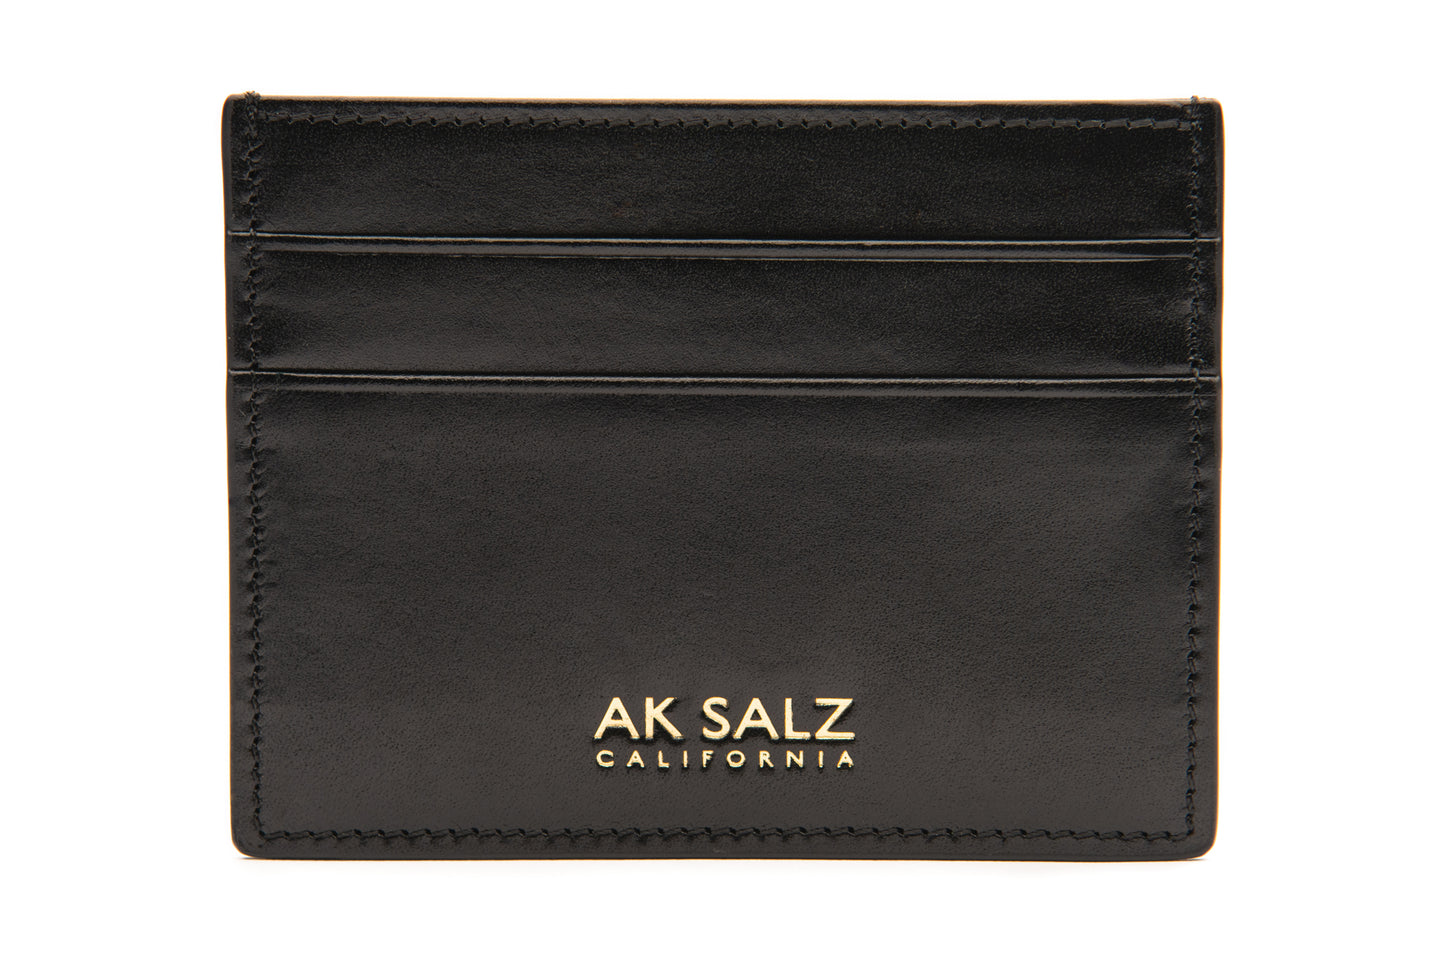 AK Salz Card Case in Vegetable Tanned Rodeo Black Leather